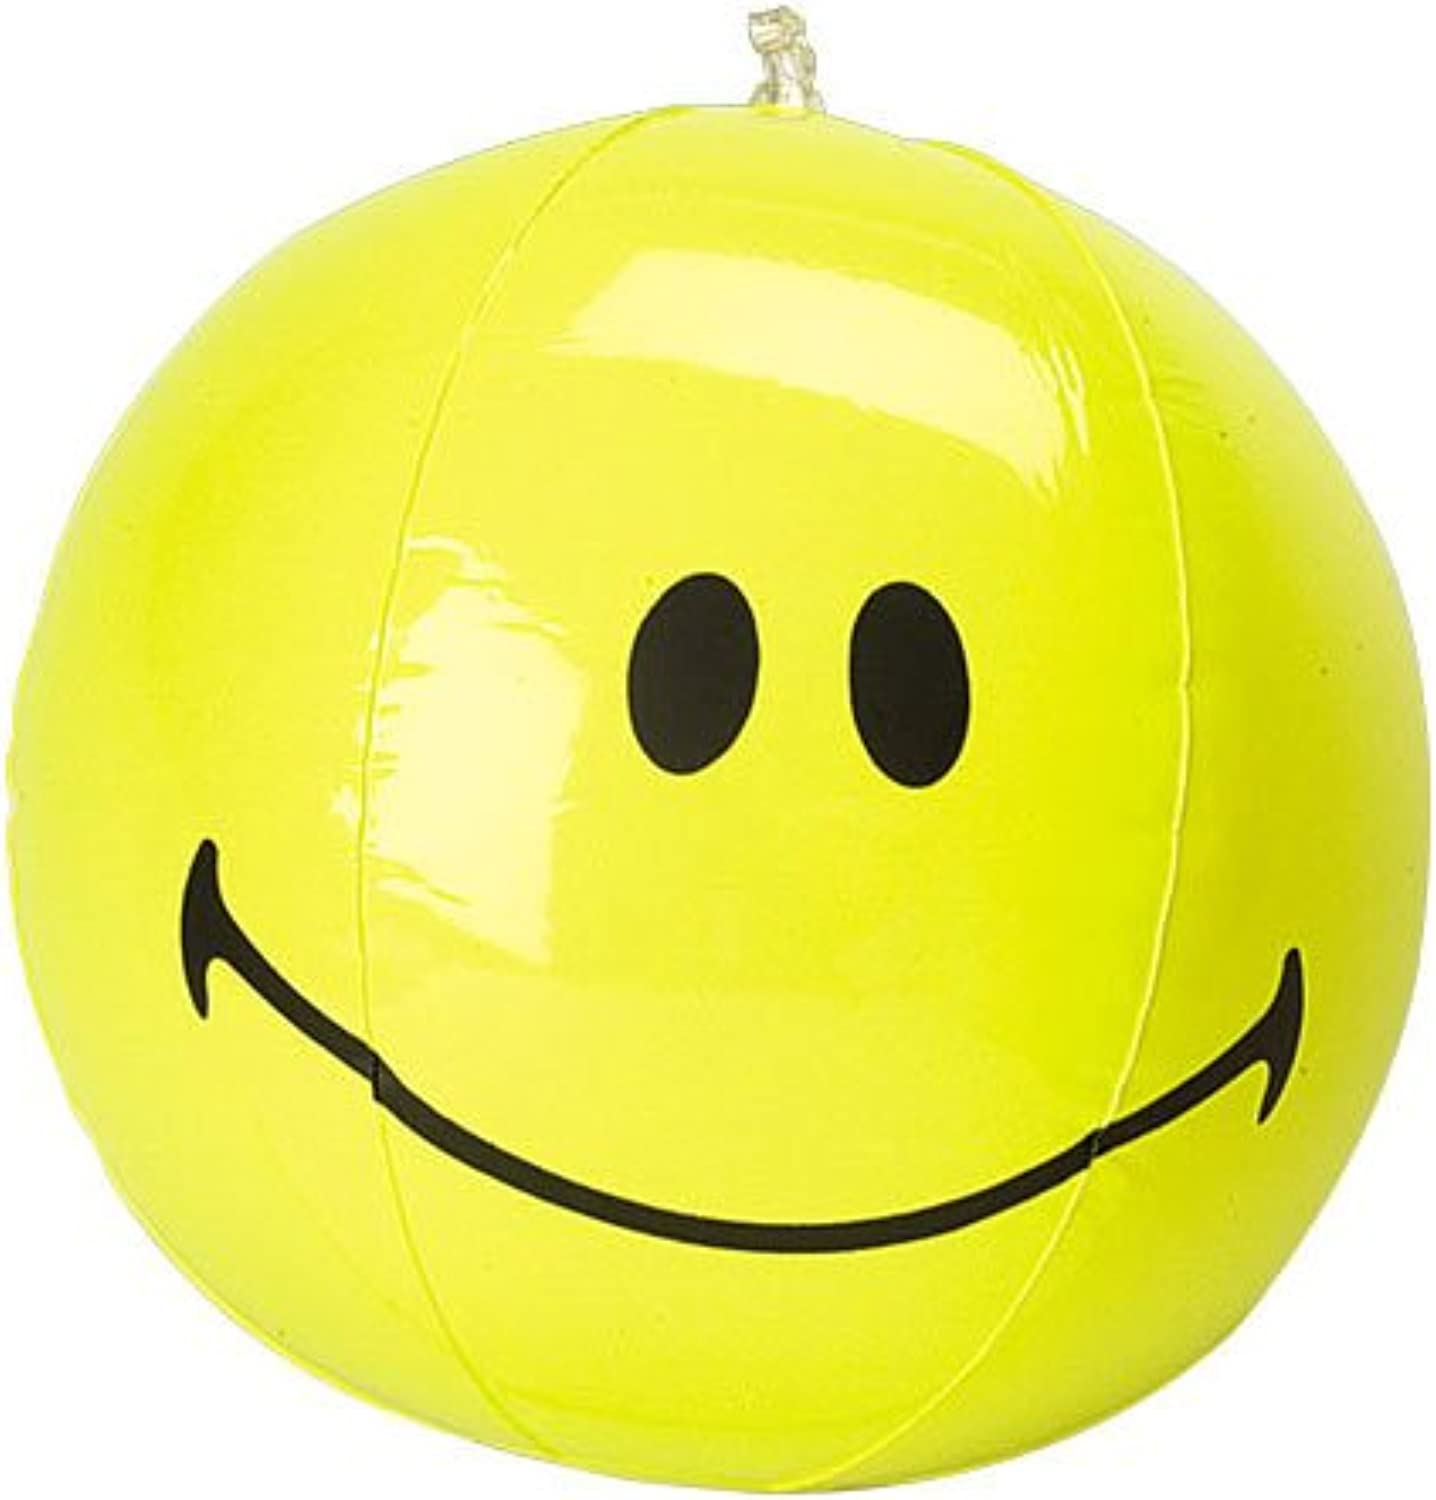 US Toy Company IN200 Smile Ball Inflates